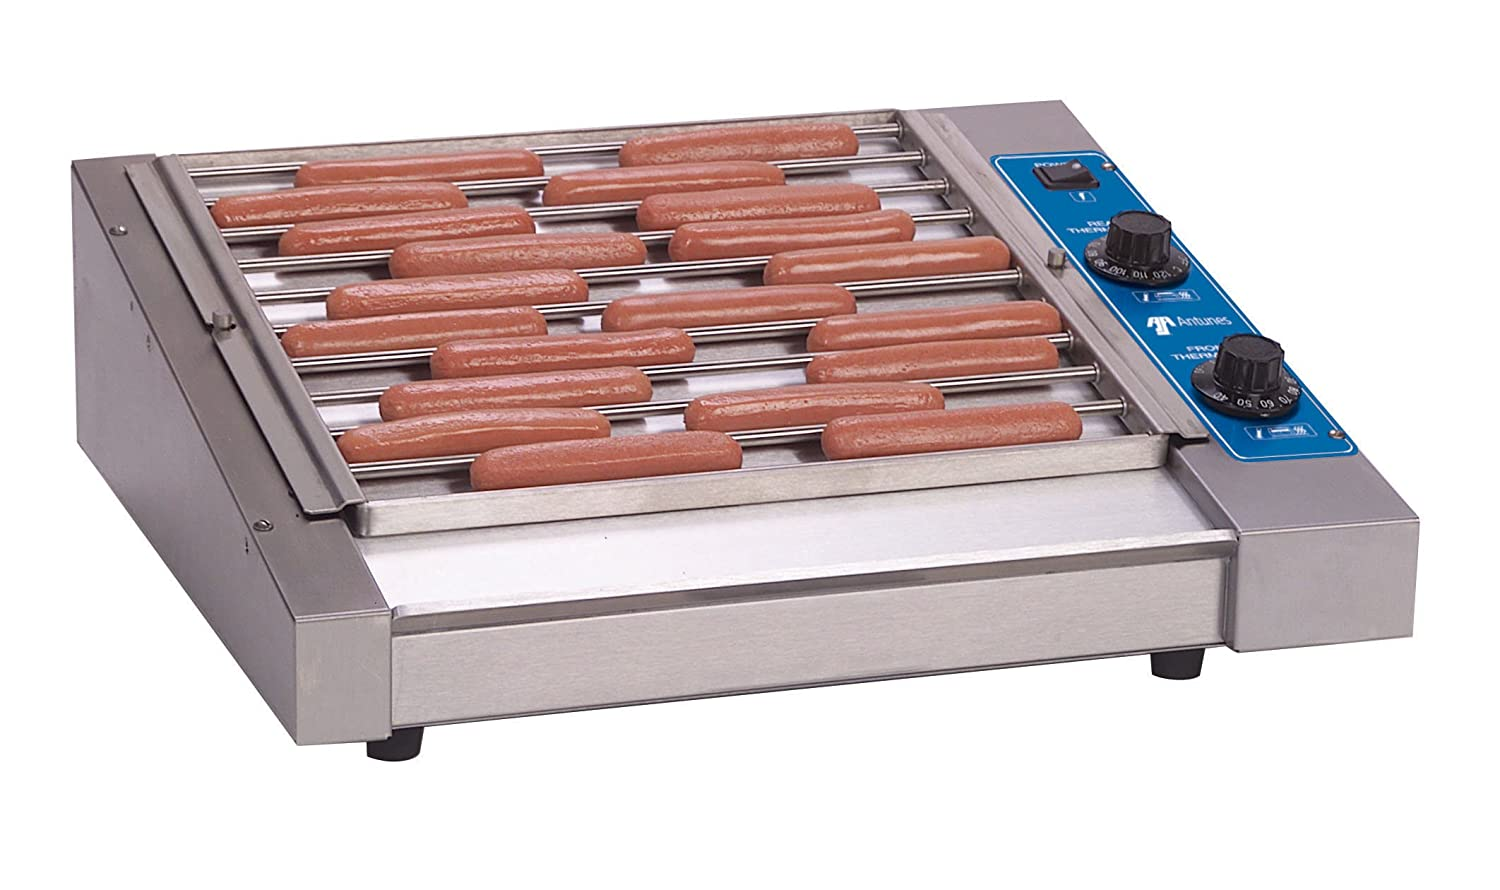 Antunes 9300320 HDC-21A Hot Dog Corral, 23.13